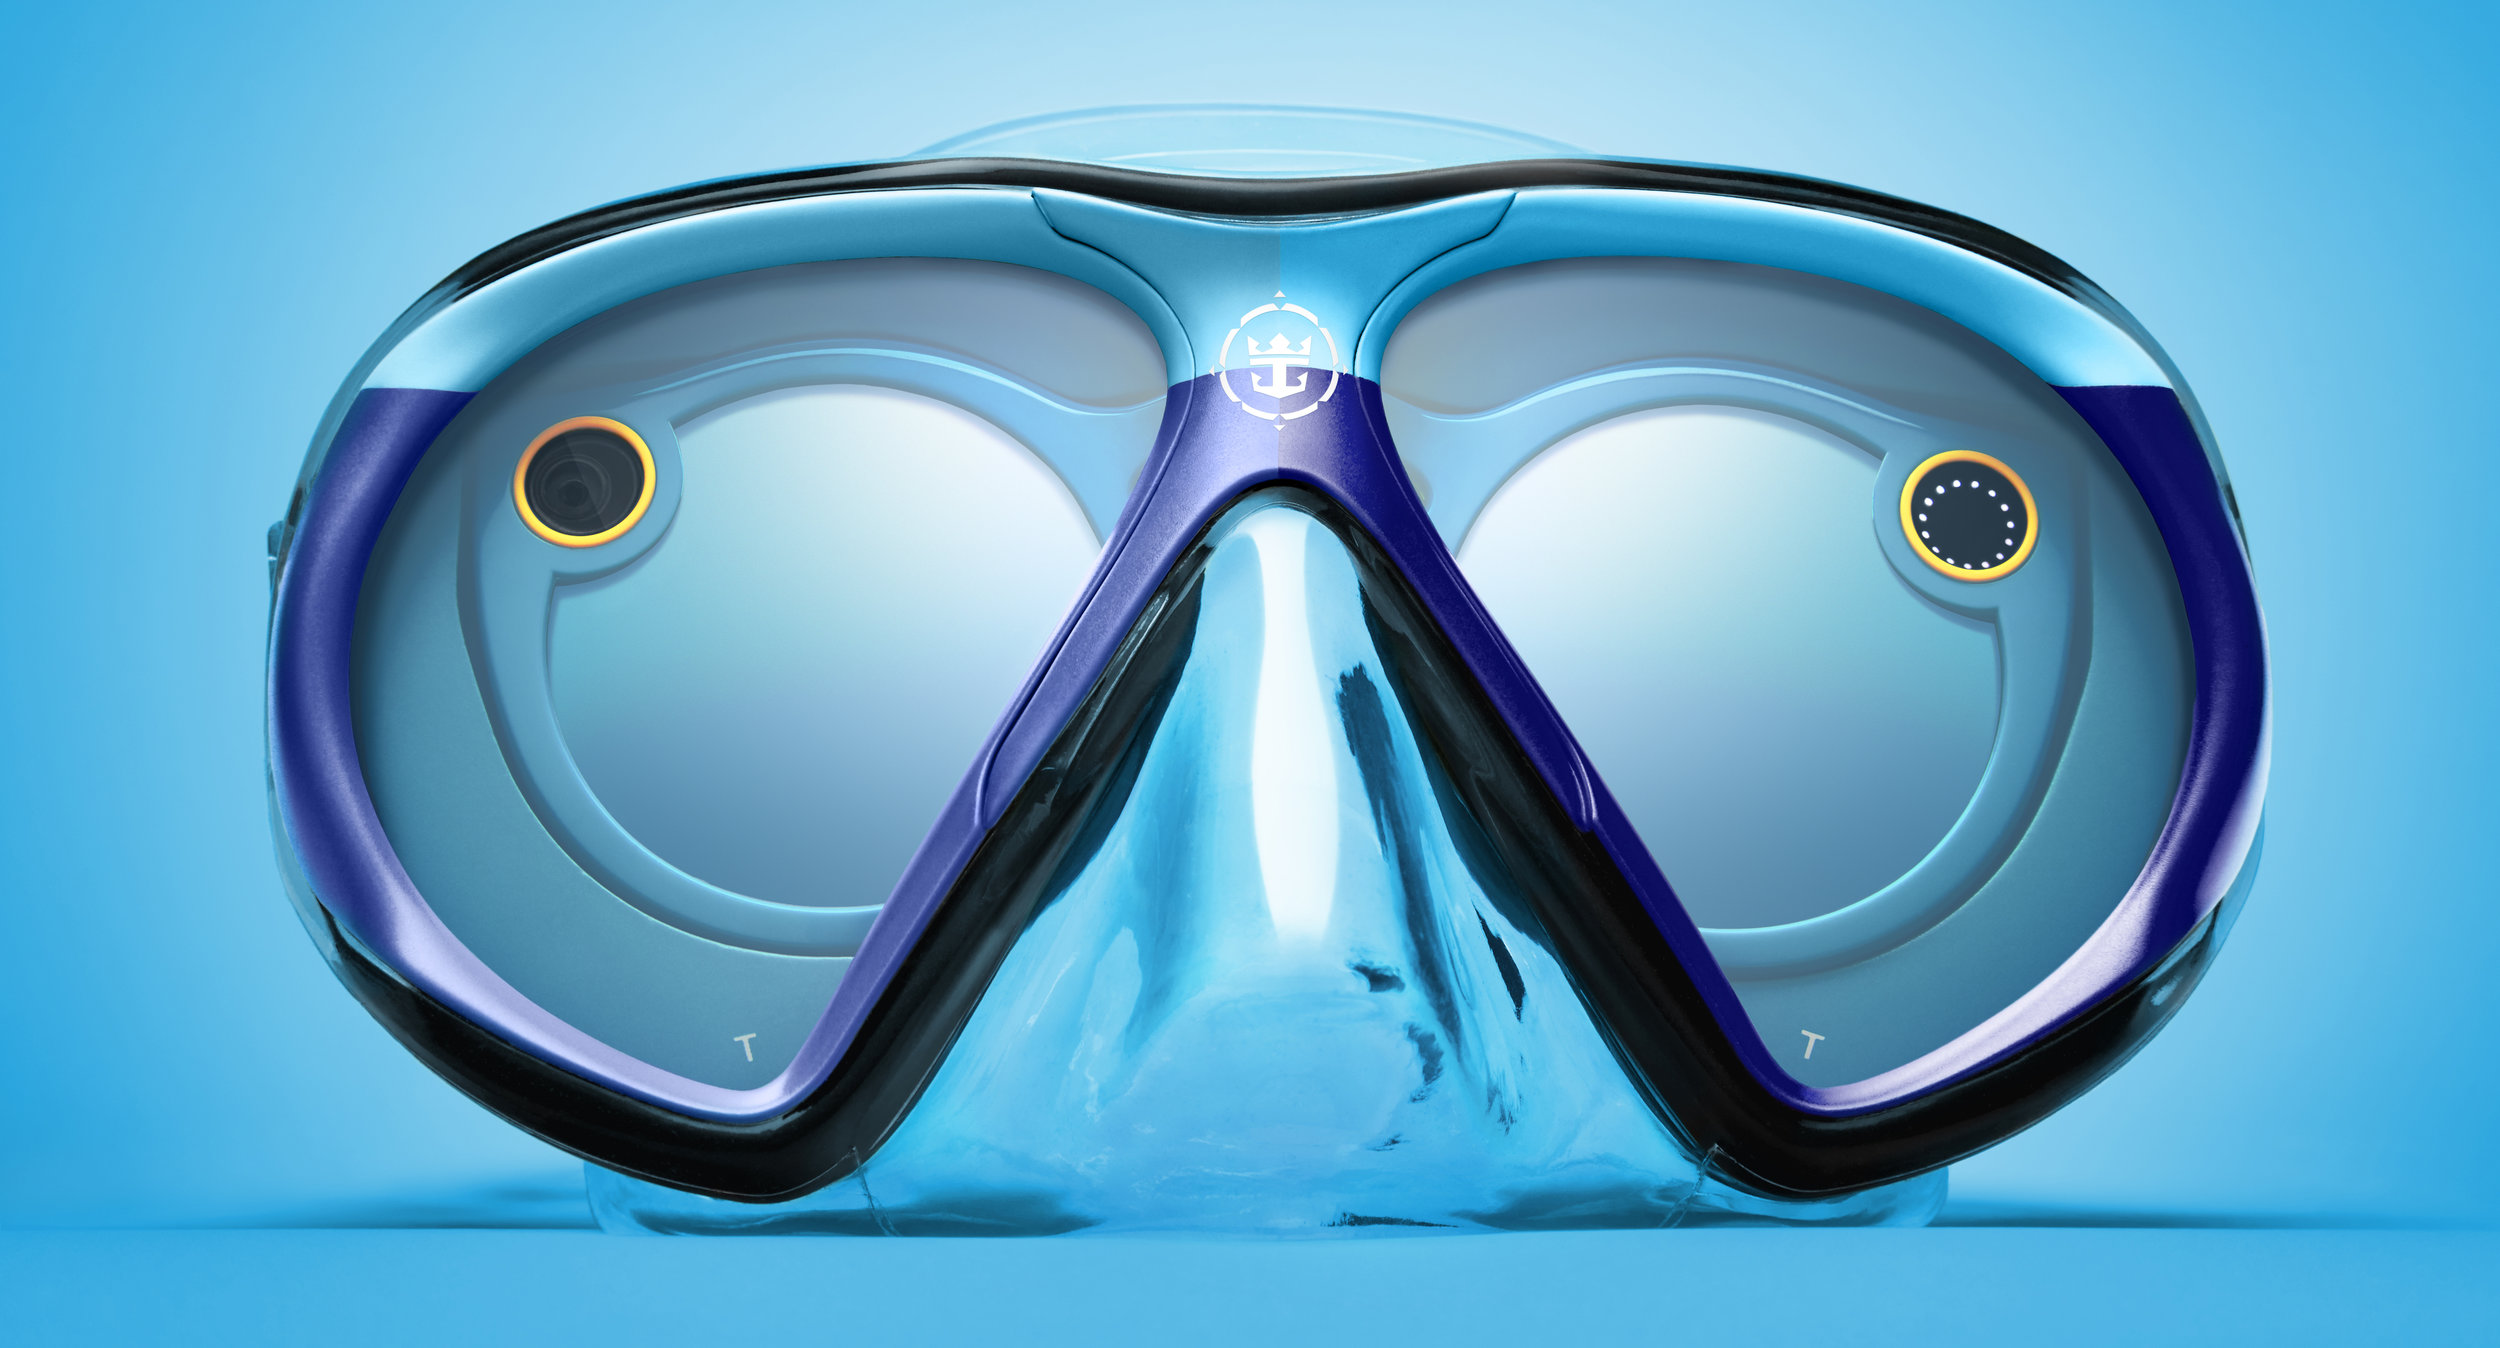 goggles_0001_RCI2-17-01994_Snapchat_Spectables_BlueGoggles_TealSpectacles_Blue.jpg